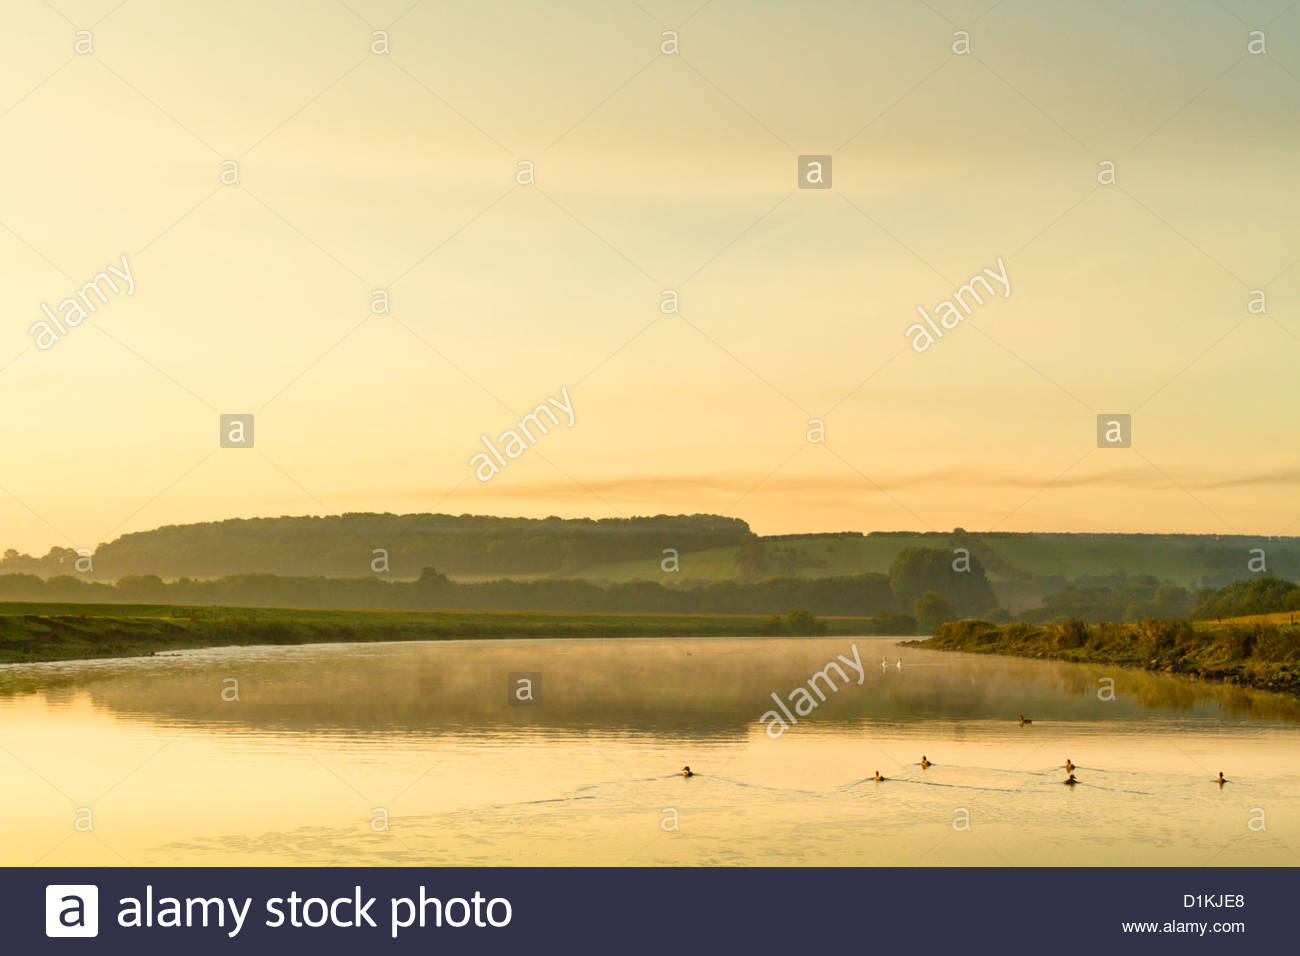 An English countryside and river landscape at dawn. The River Trent in Nottinghamshire, England, UK - Stock Image